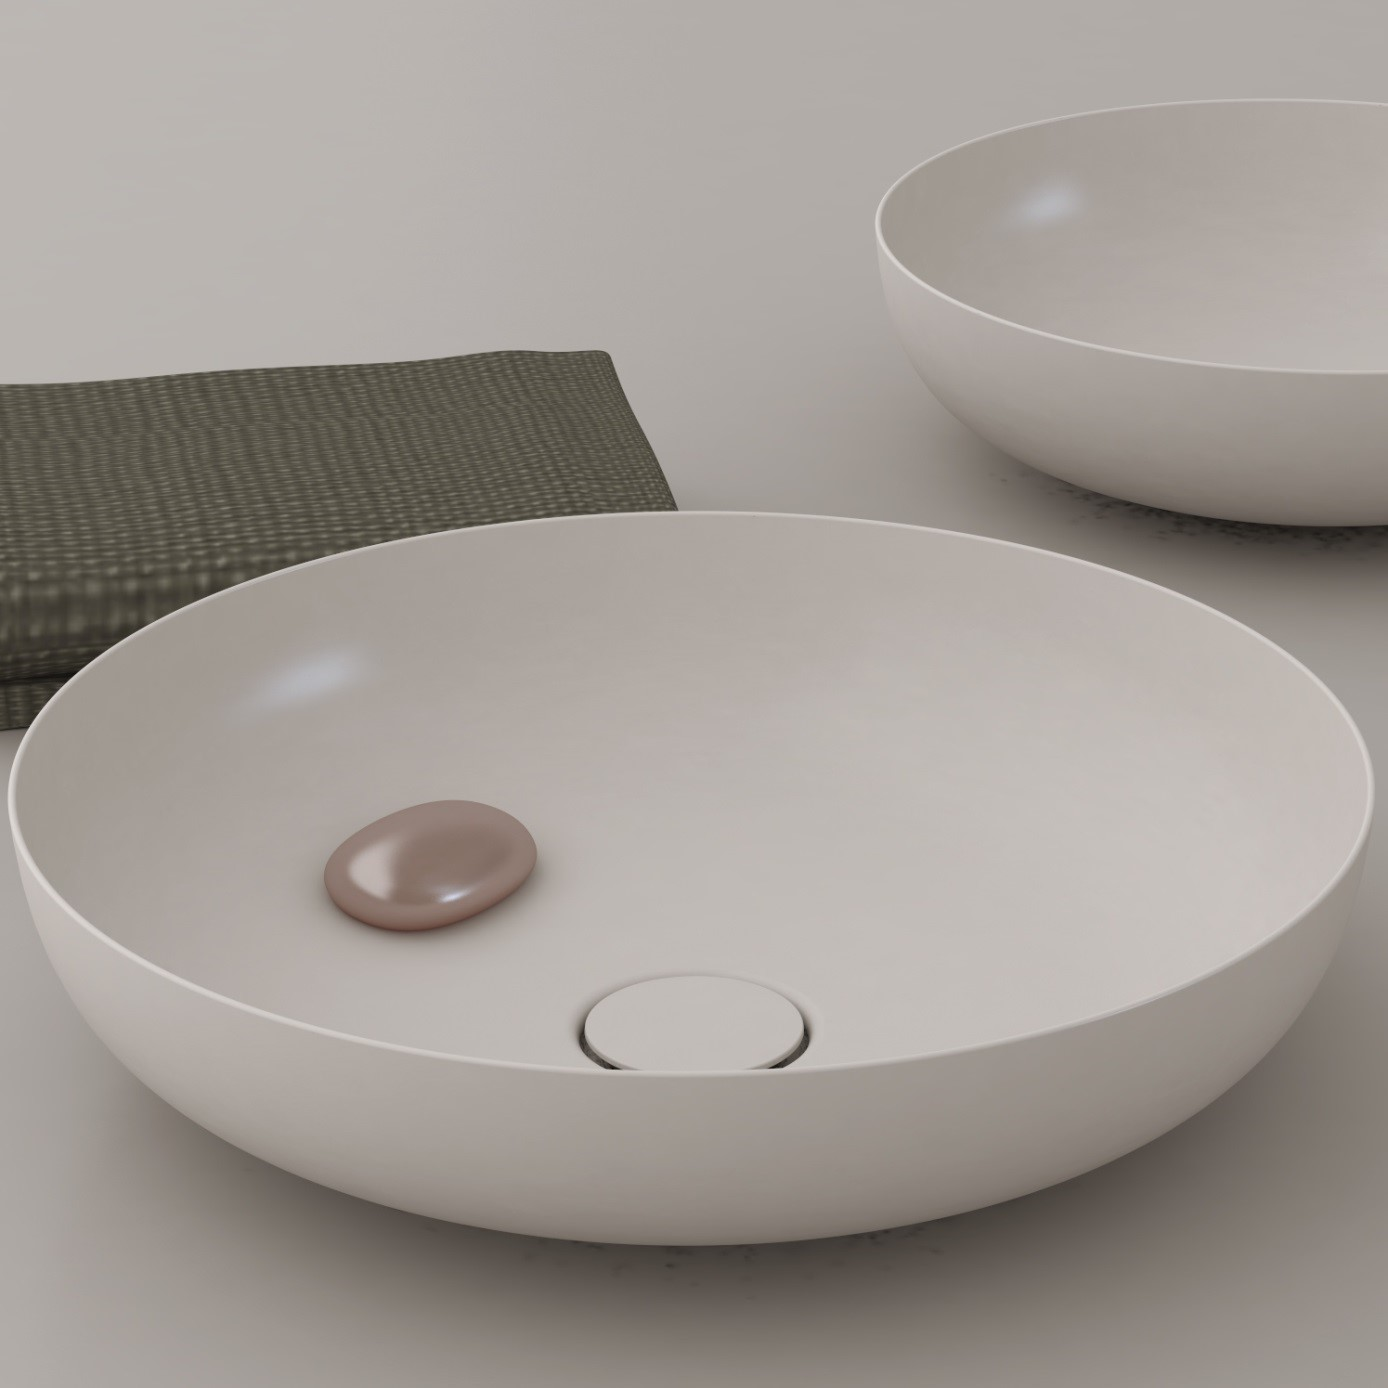 Duschtasse Conoflat Miena Washbasin With Coordinated Colours By Kaldewei Archello